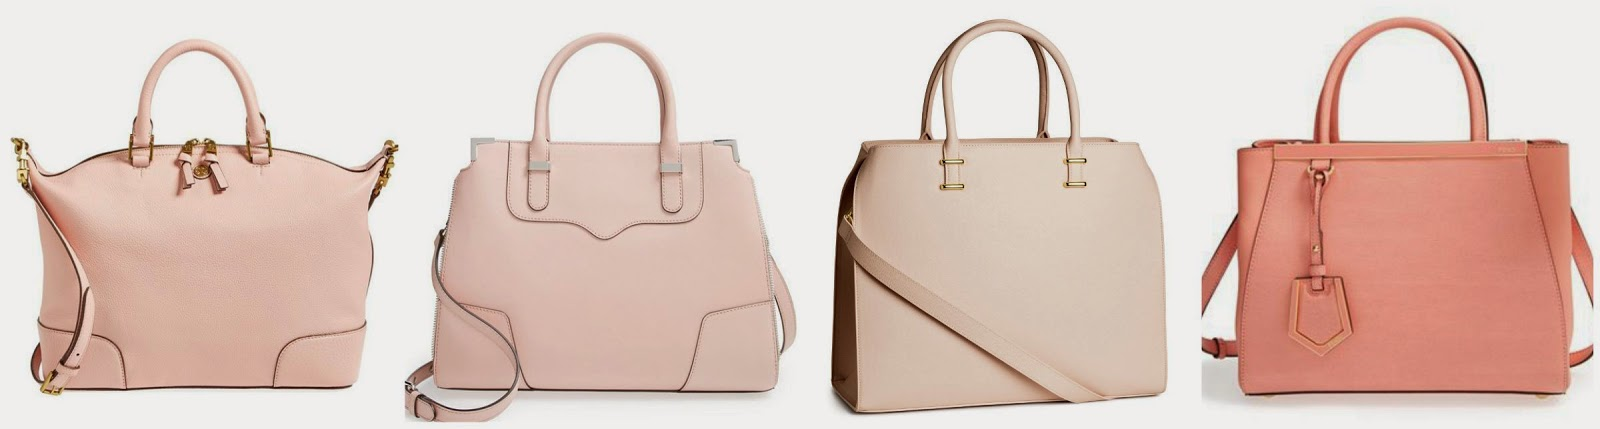 These Are Some Of My Favorite Blush And Light Pink Handbags From H M 40 Rebecca Minkoff 325 Tory Burch 495 Fendi 1 900